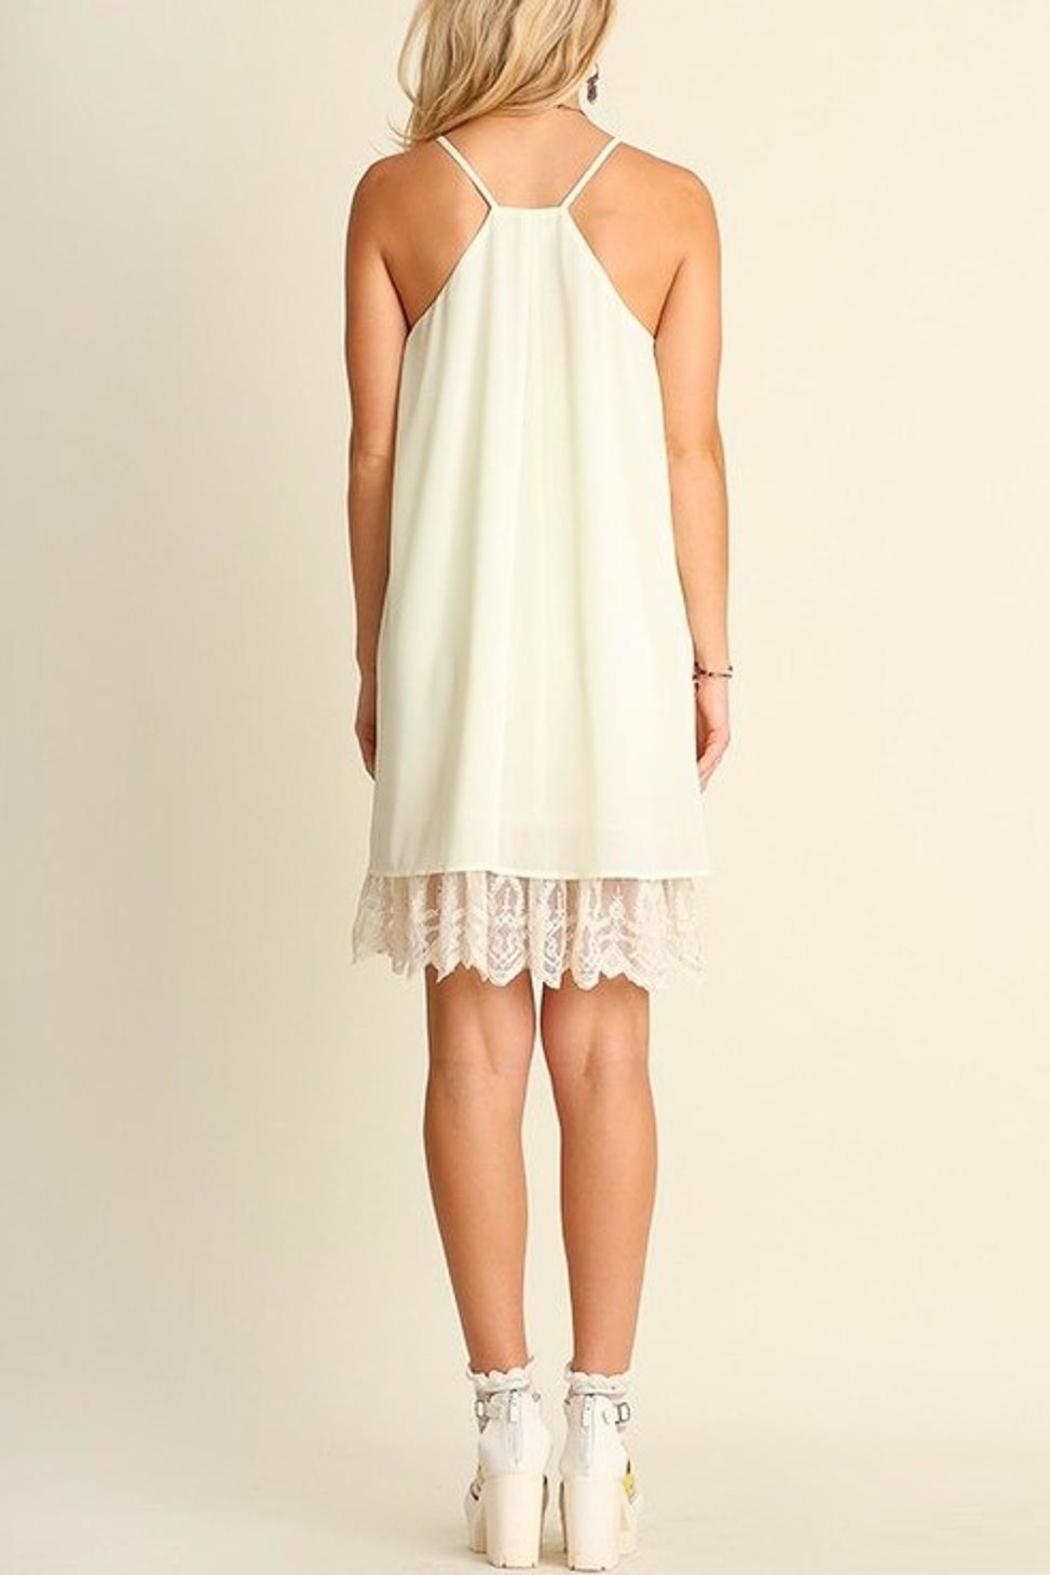 People Outfitter Ella Lace Dress - Front Full Image